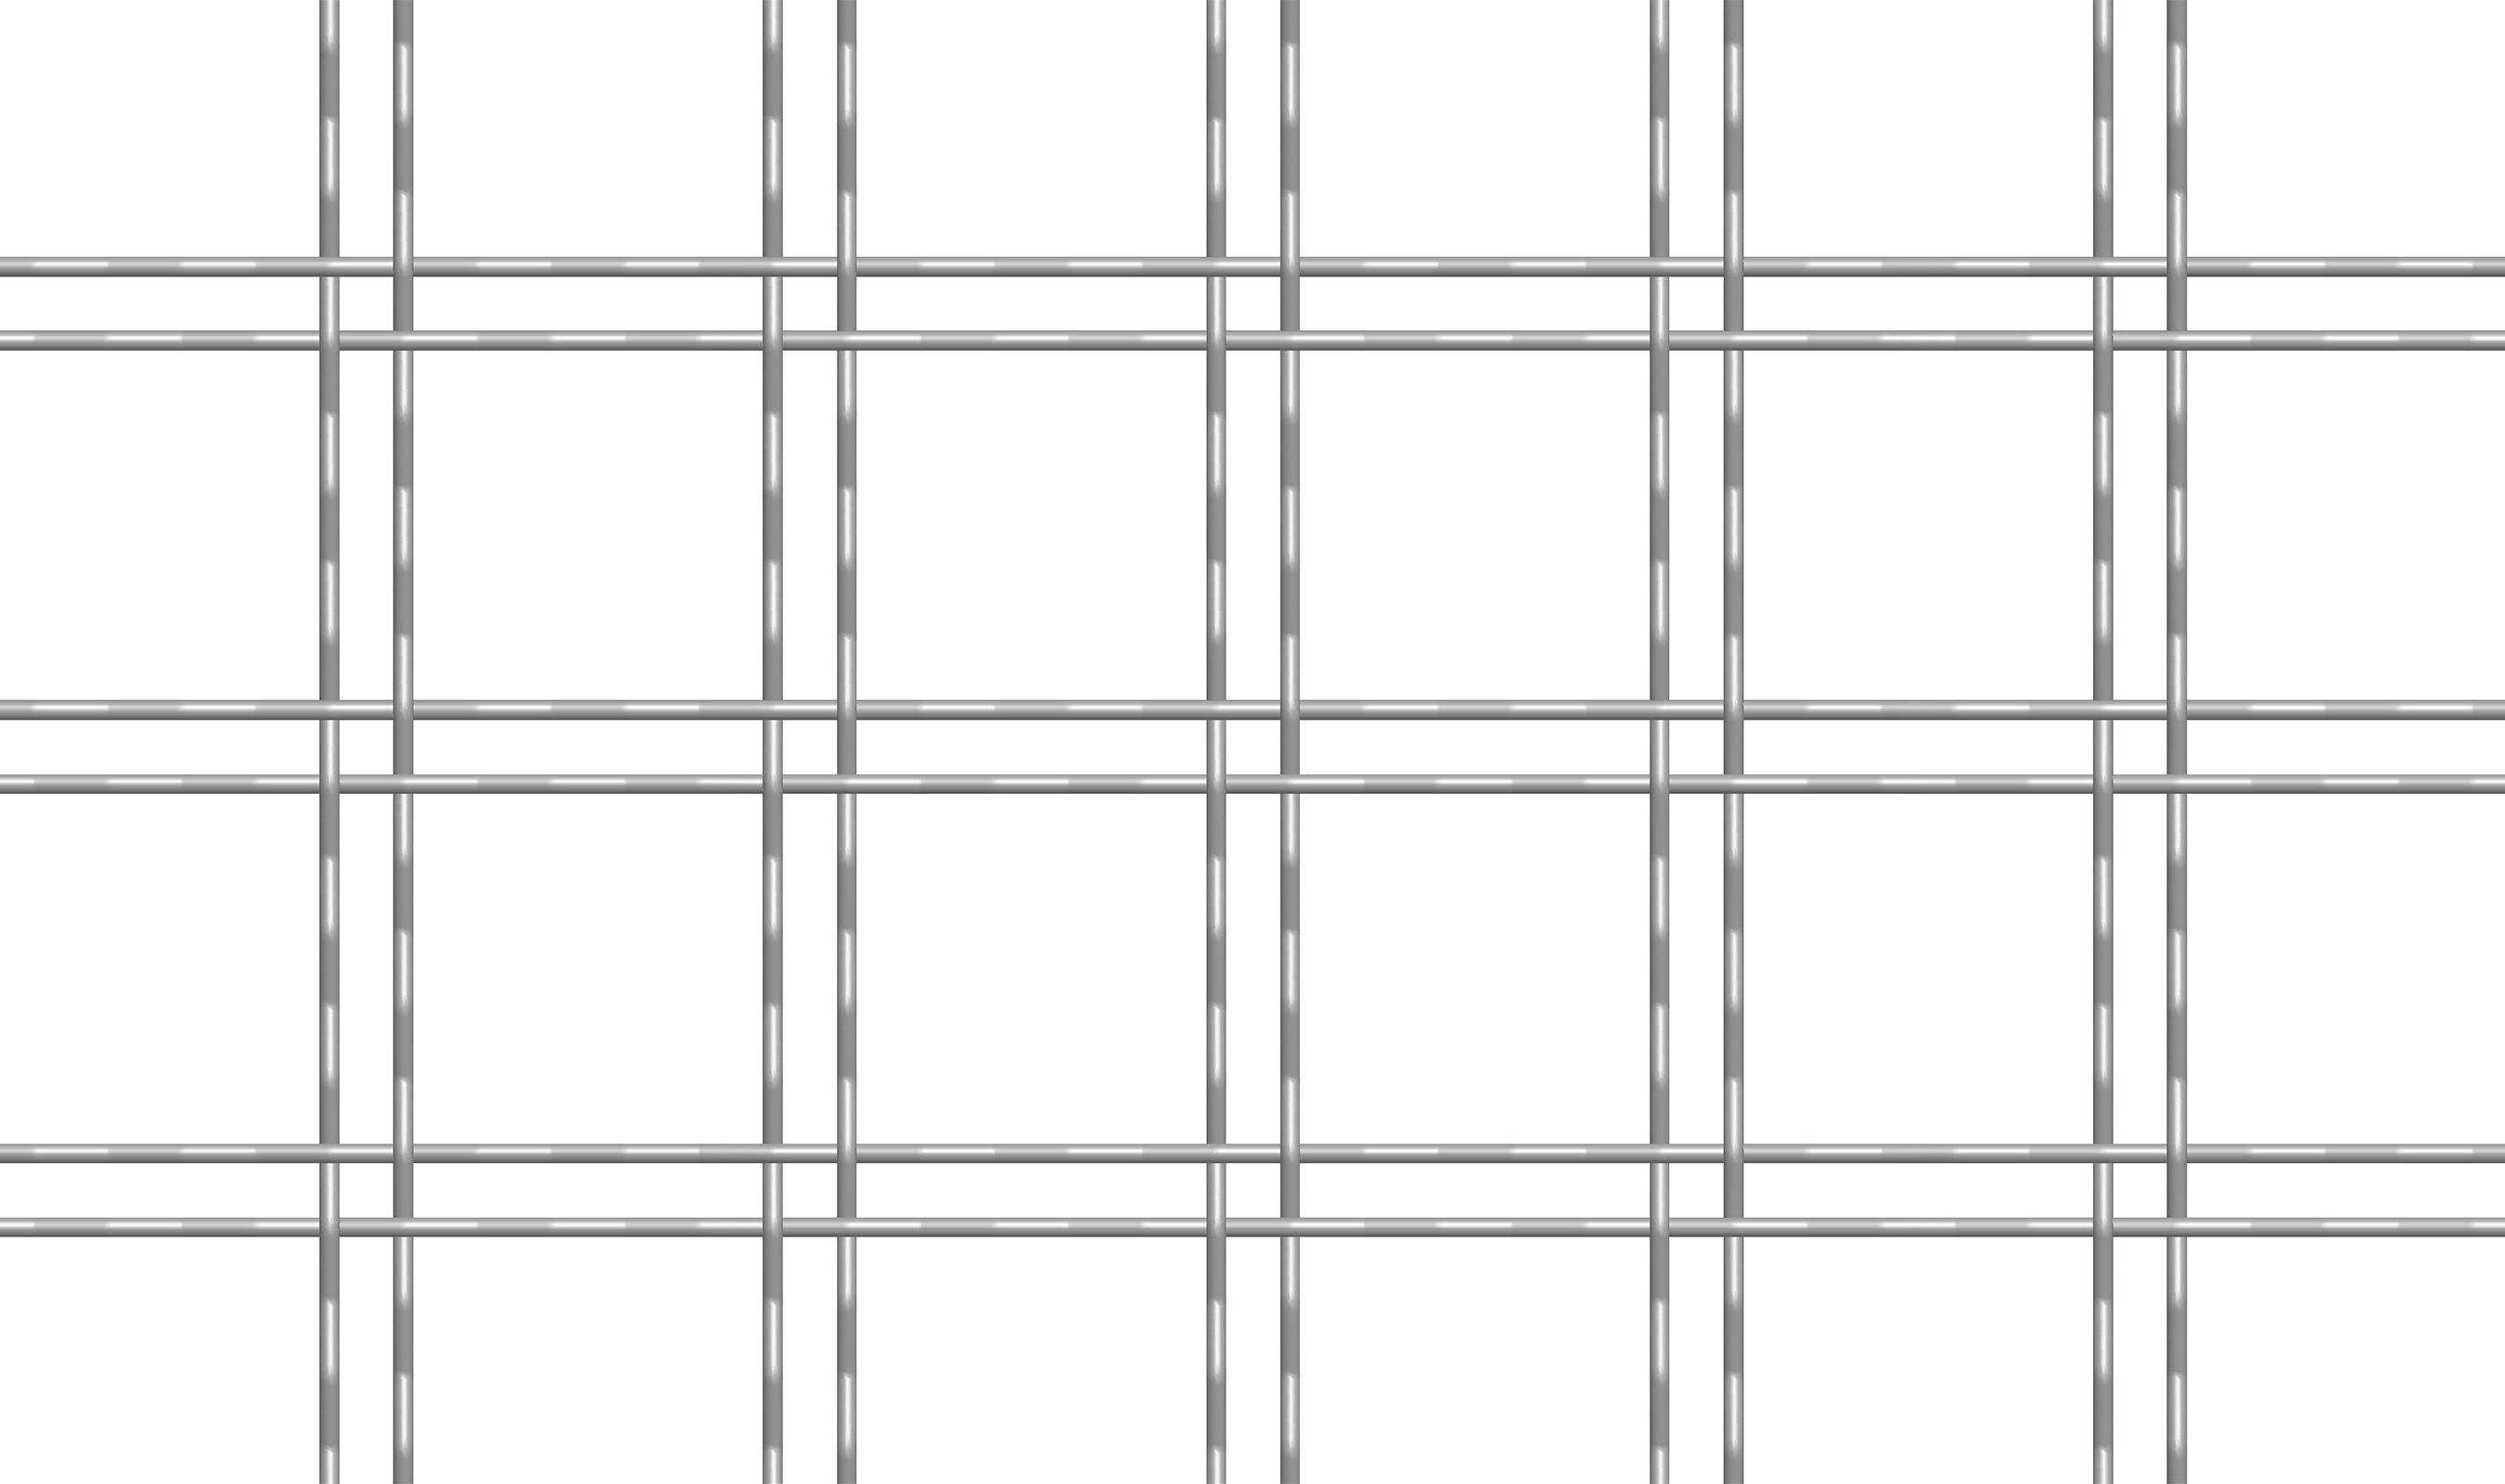 M22-97 wire mesh drawn in CAD